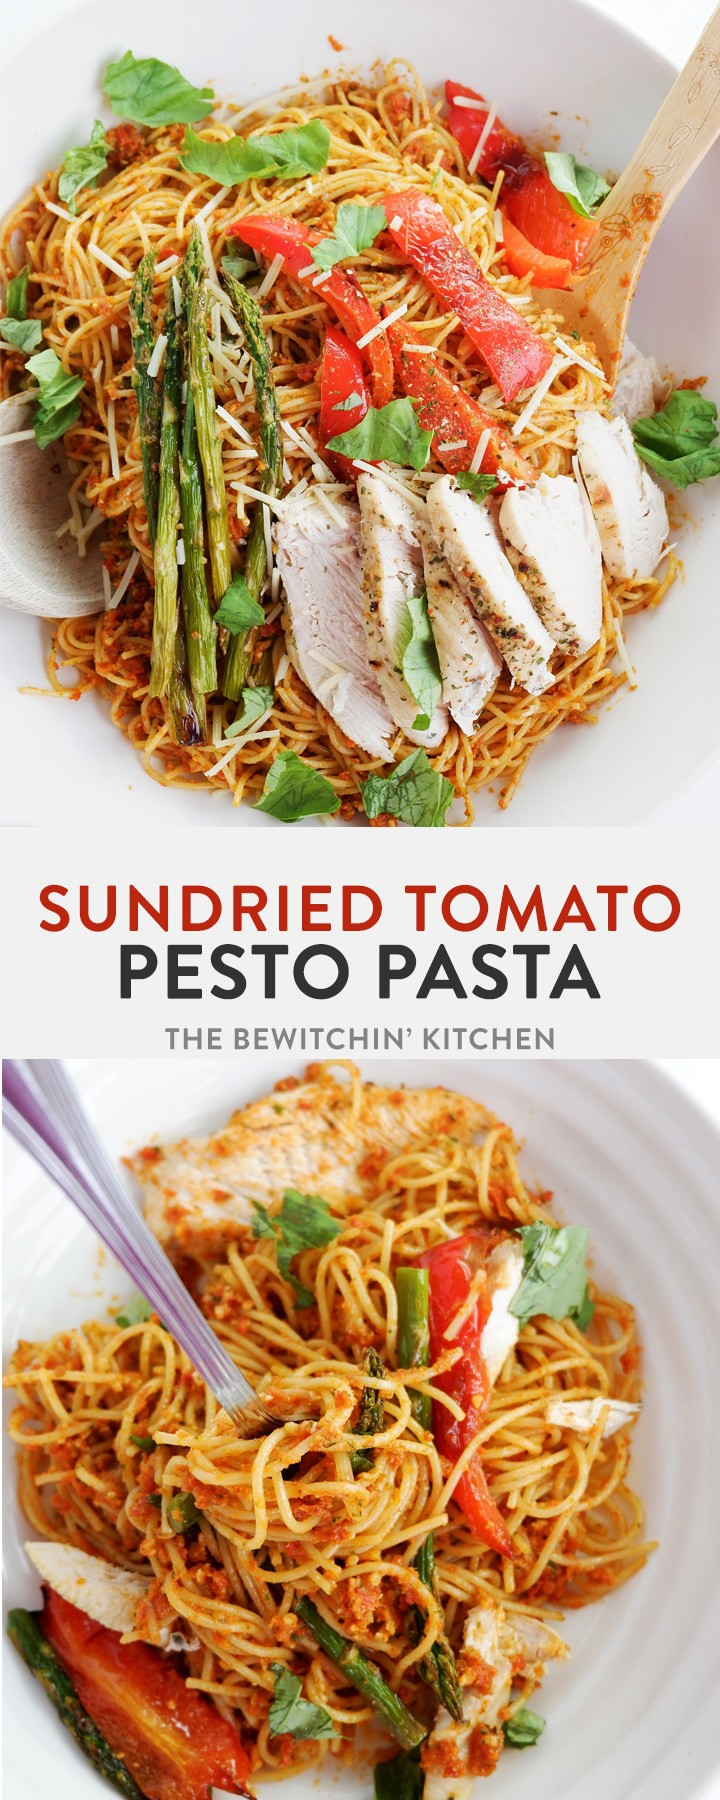 Sundried Tomato Pesto Pasta - this delicious summer dinner pasta dish features my favorite spring and summer vegetables and a homemade sundried tomato pesto.